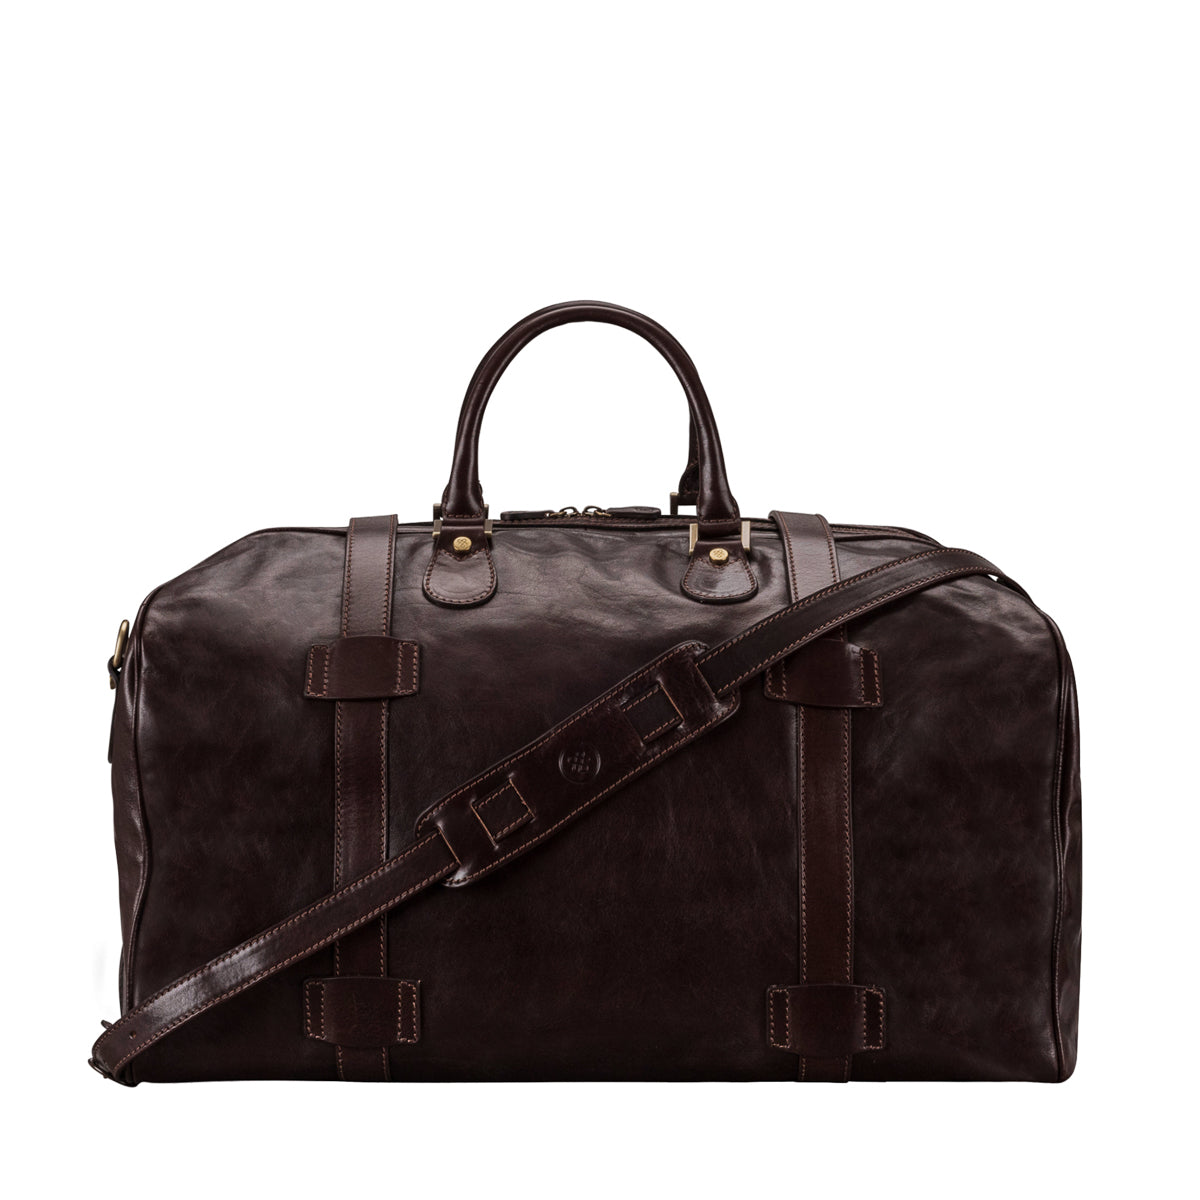 Image 4 of the Large 'Flero' Dark Chocolate Veg-Tanned Leather Holdall